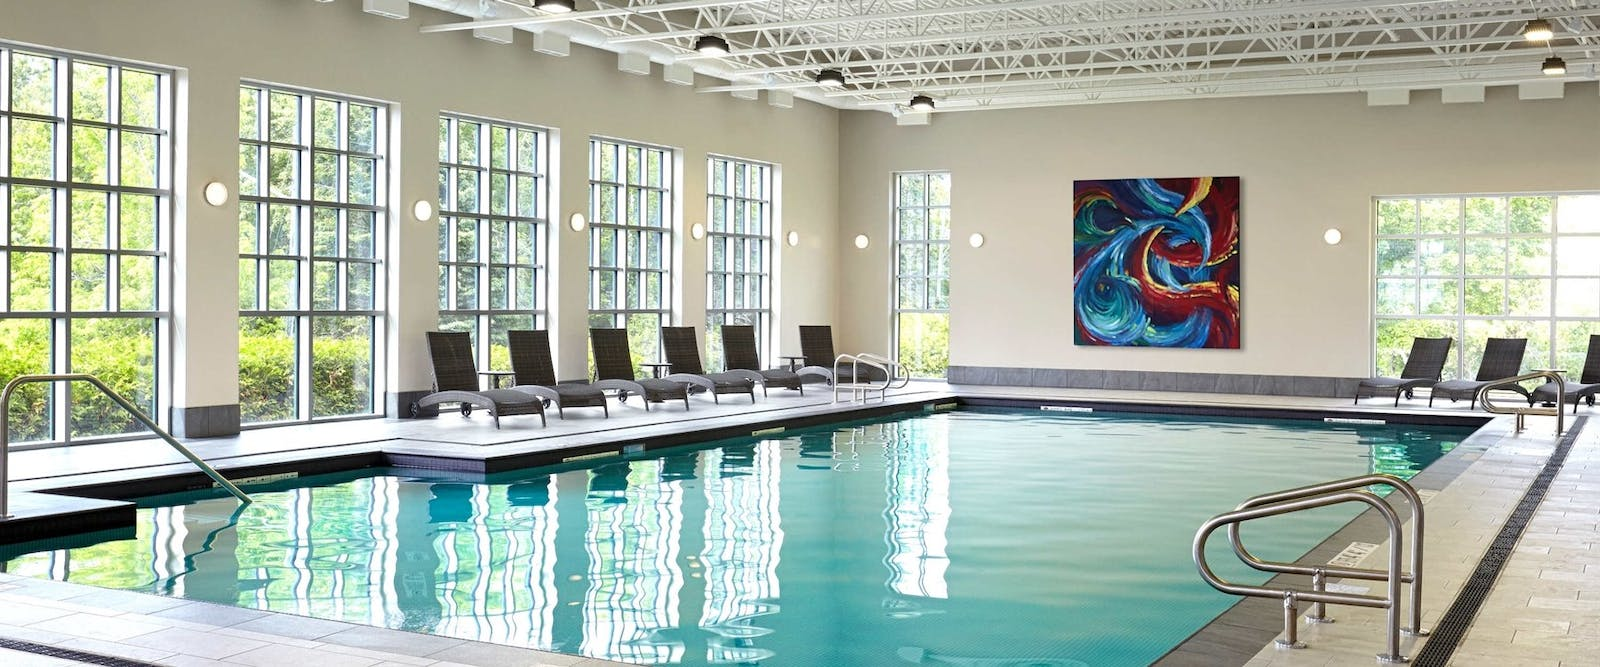 Indoor pool at The Algonquin Resort, St. Andrews